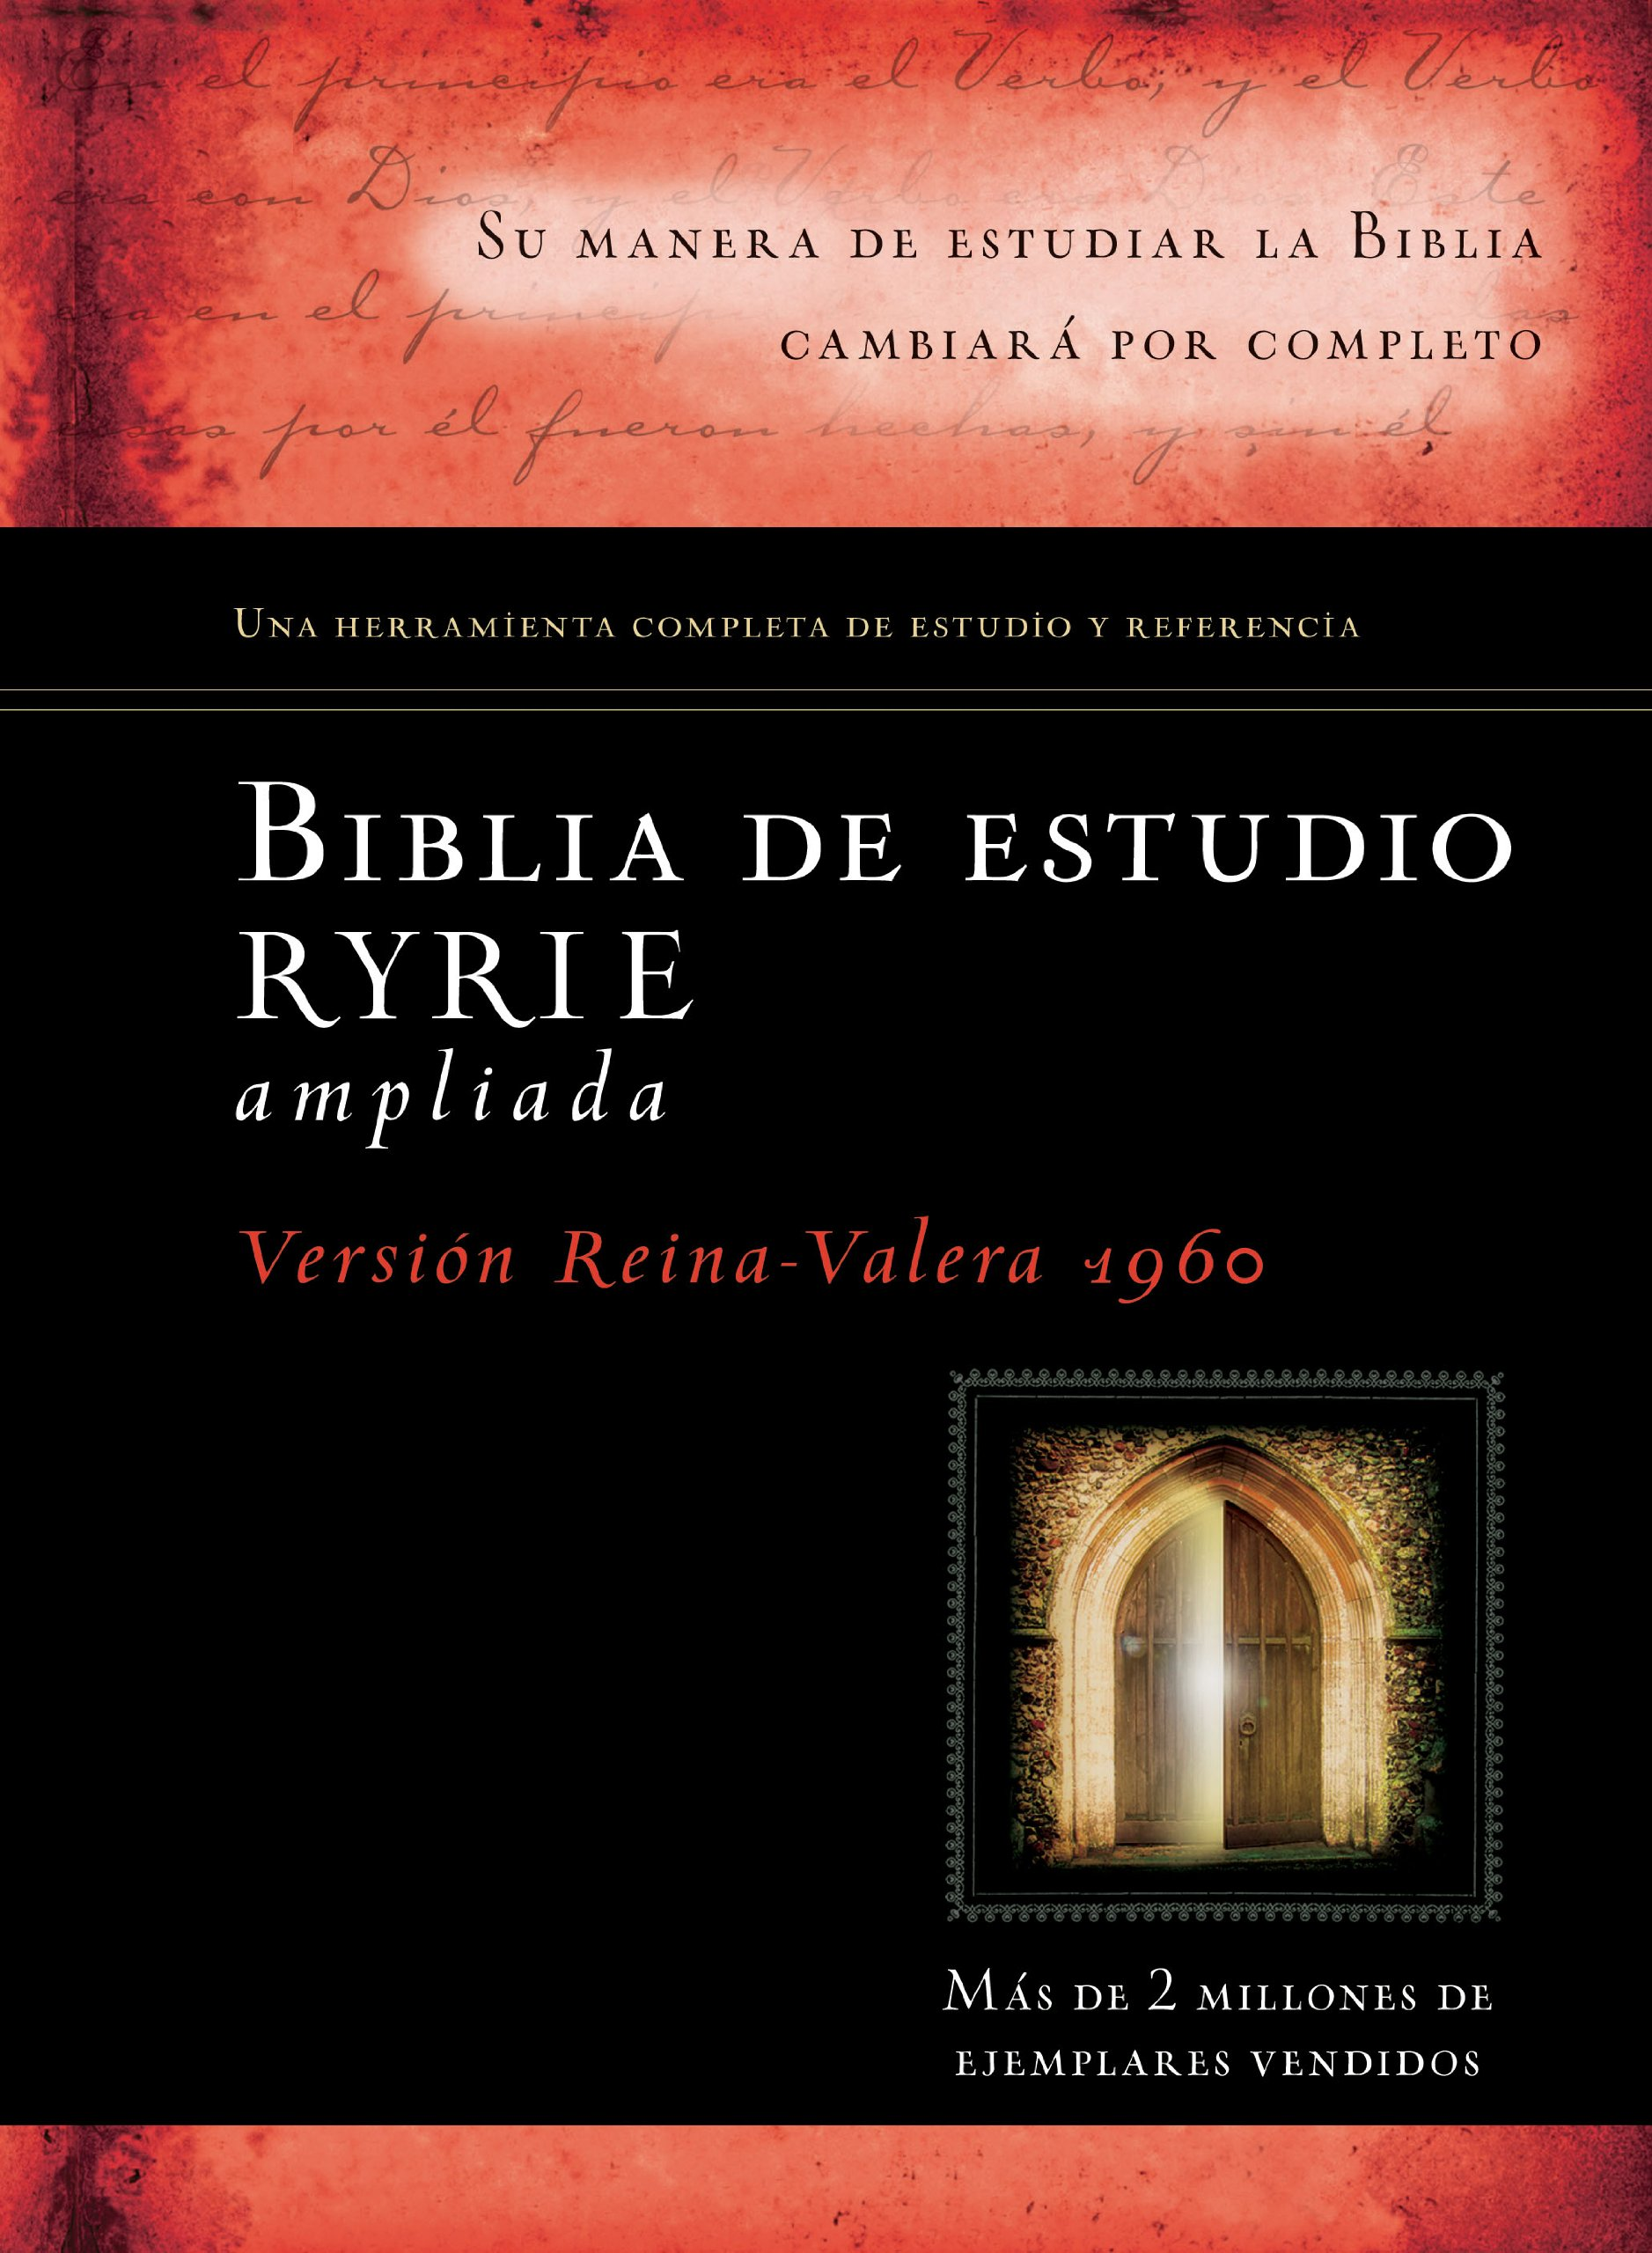 New ryrie study bible rvr 1960 amazon co uk charles c ryrie 9780825418198 books